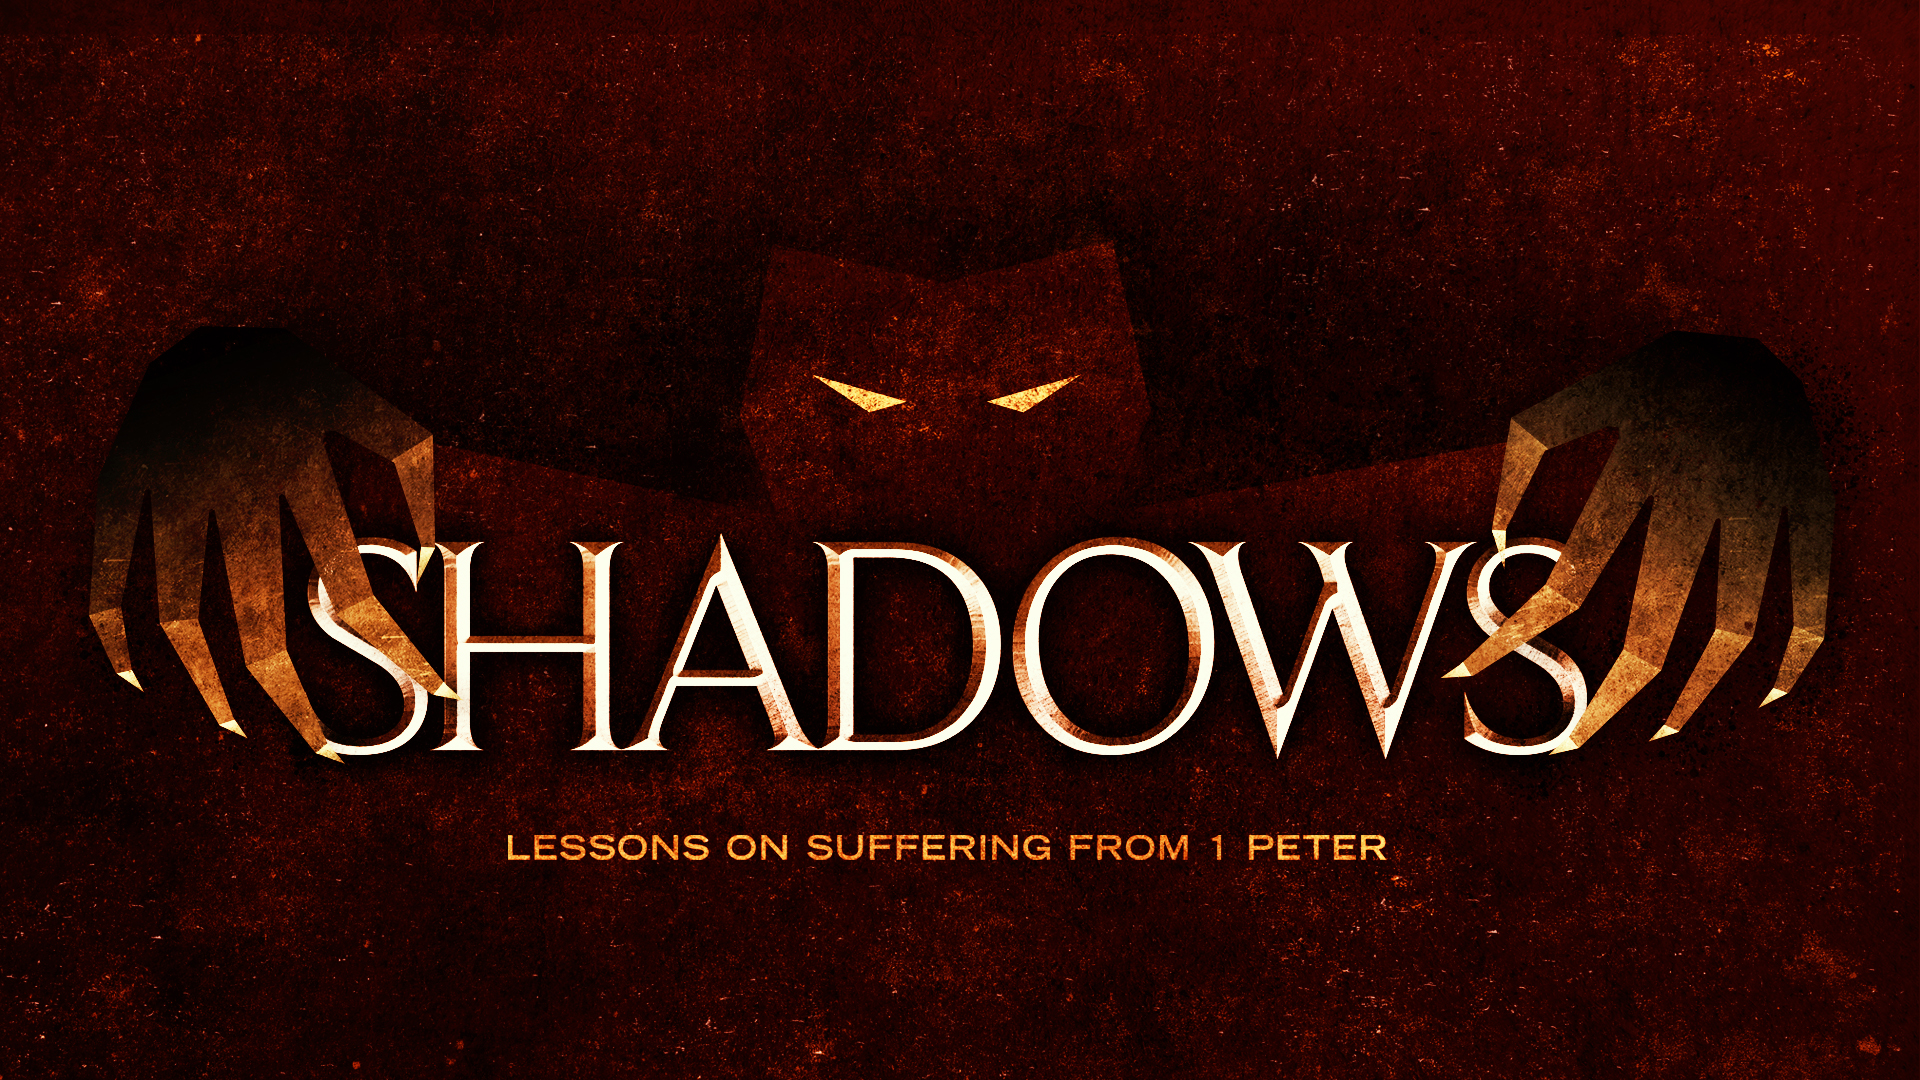 shadows_title slide.jpg